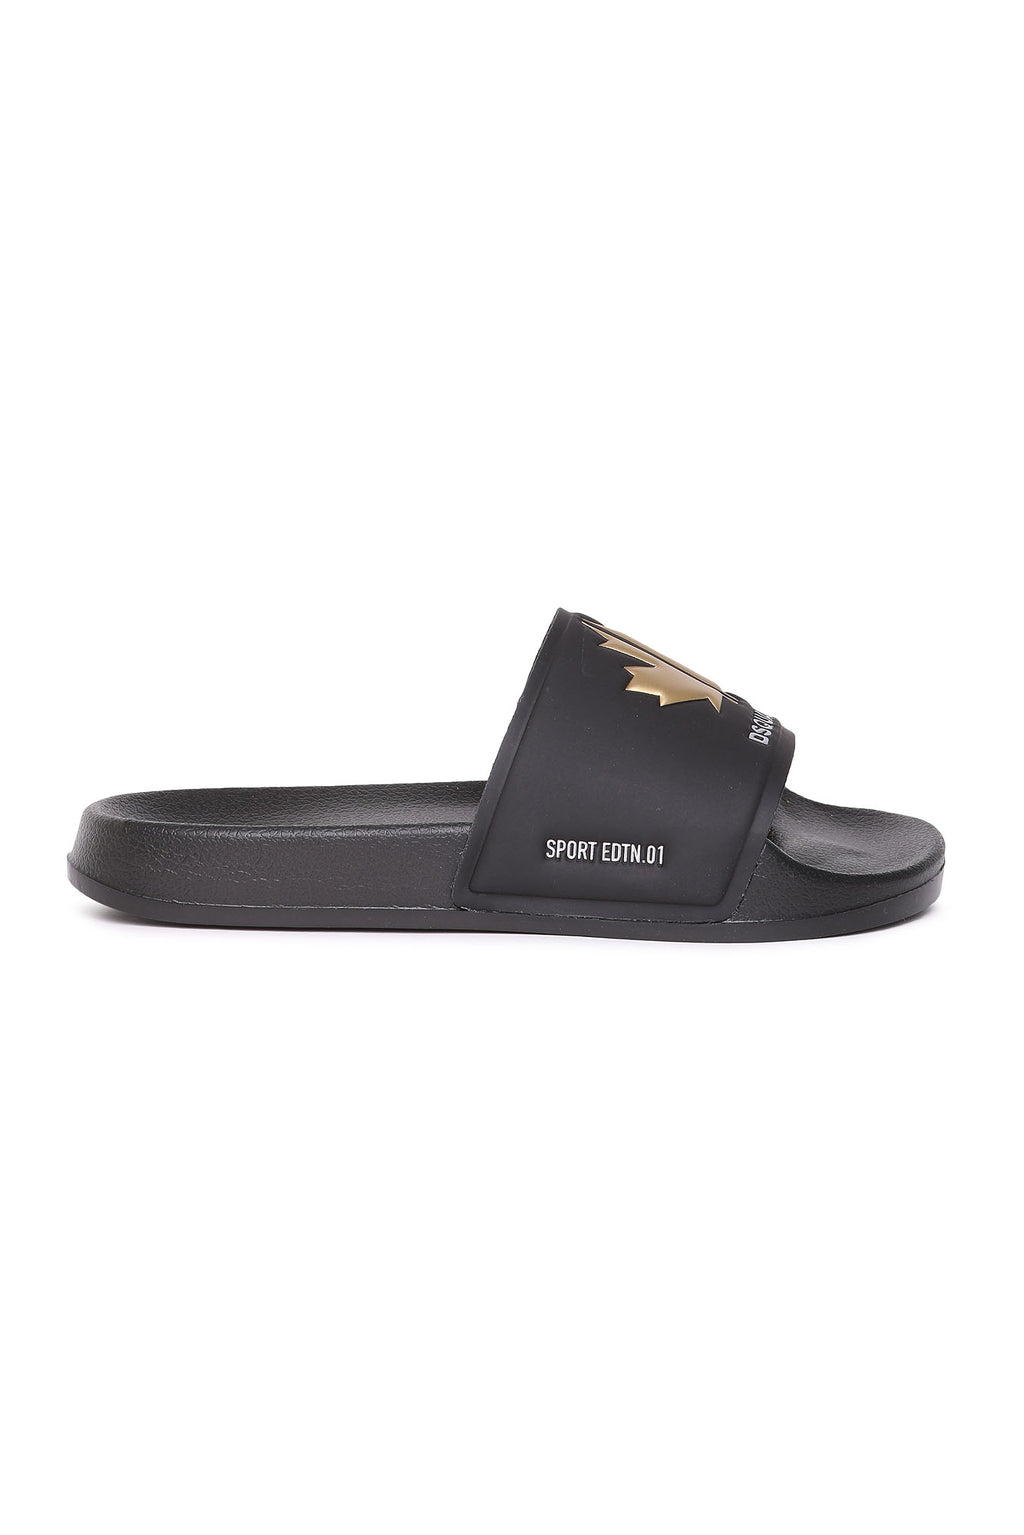 Sandales Slide Black-DSQUARED2-Maralex Paris